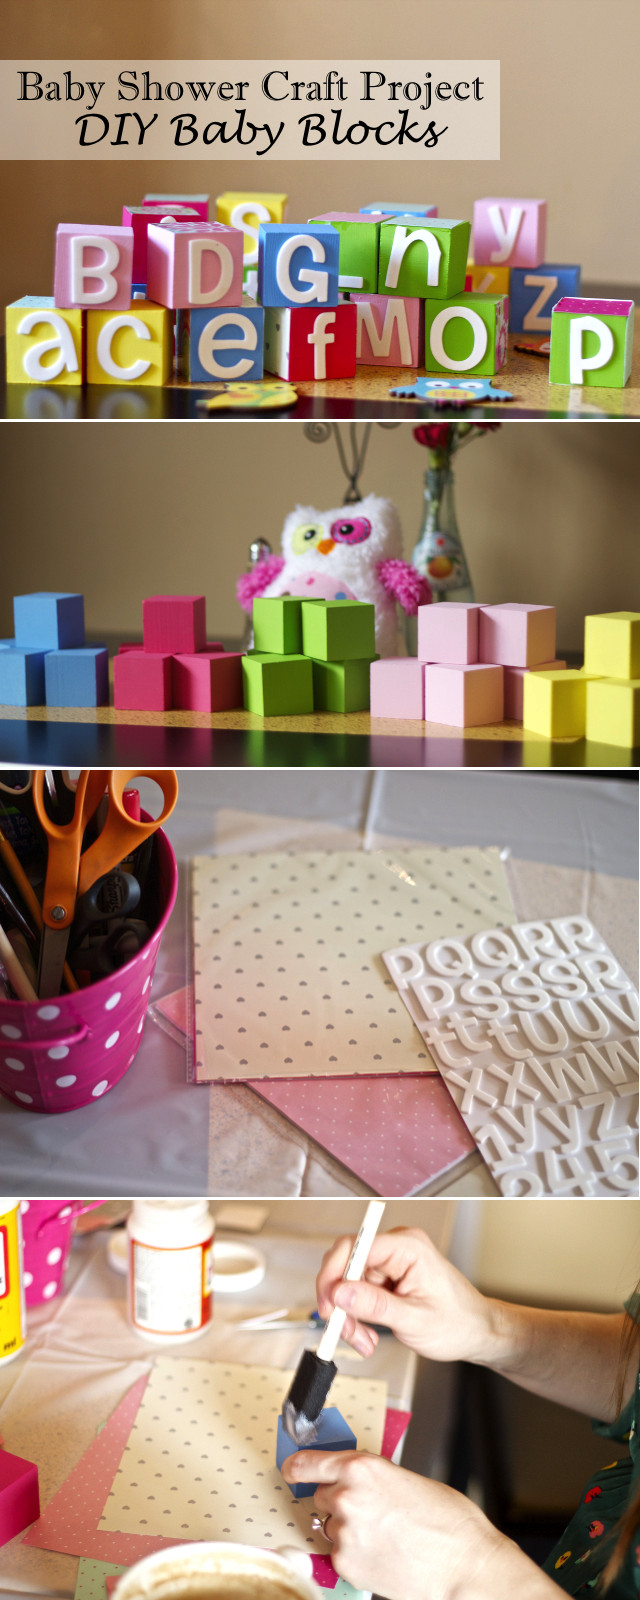 Craft Ideas For Baby Shower Decorations  Chasing Davies Baby Shower Craft Idea DIY Baby Blocks